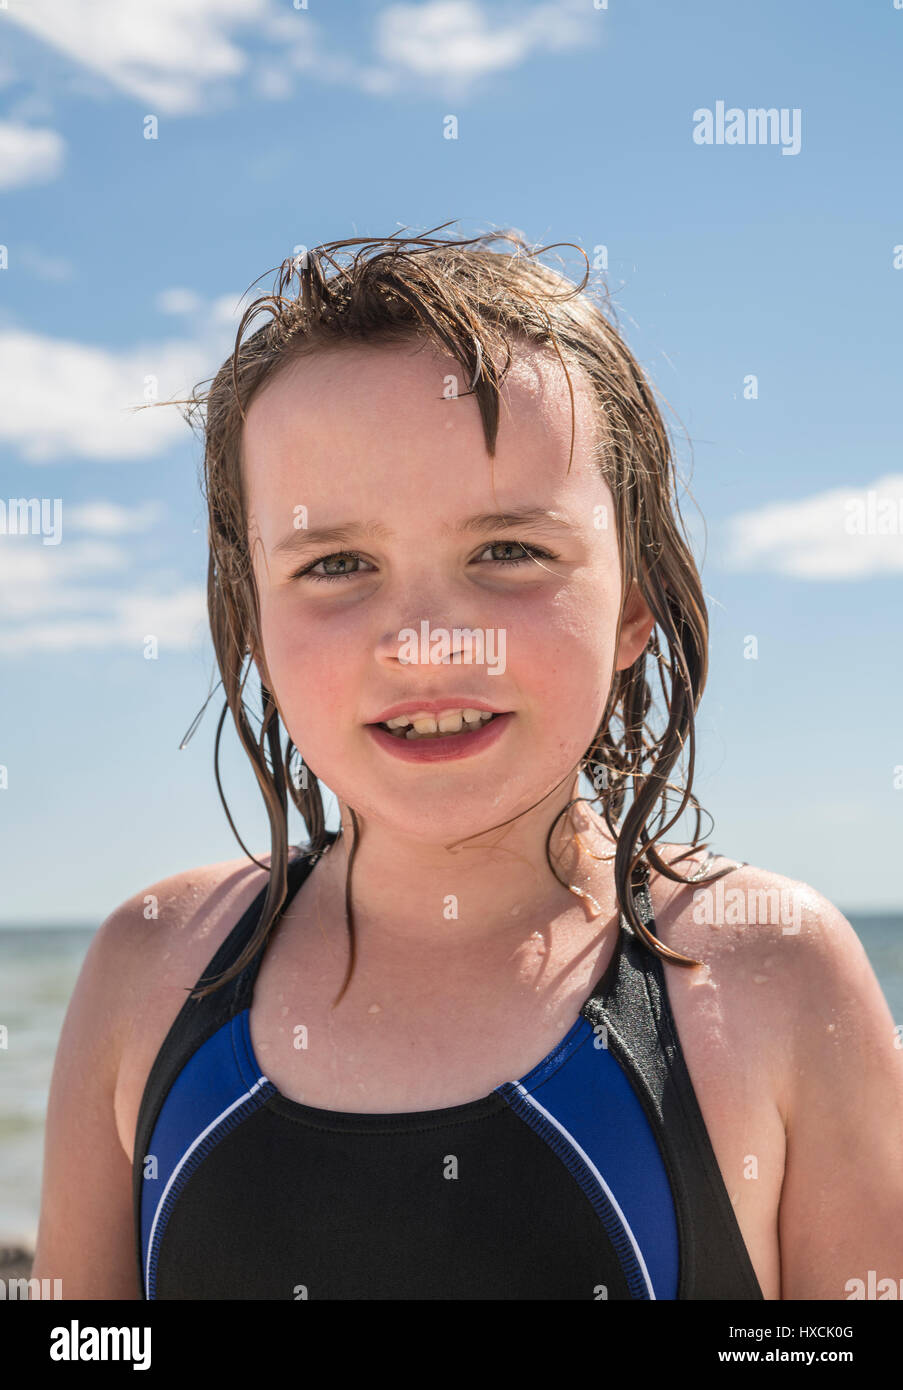 Portrait of a wet young girl in bathing suit at a beach in the summer. Face only with clear blue sky with white - Stock Image